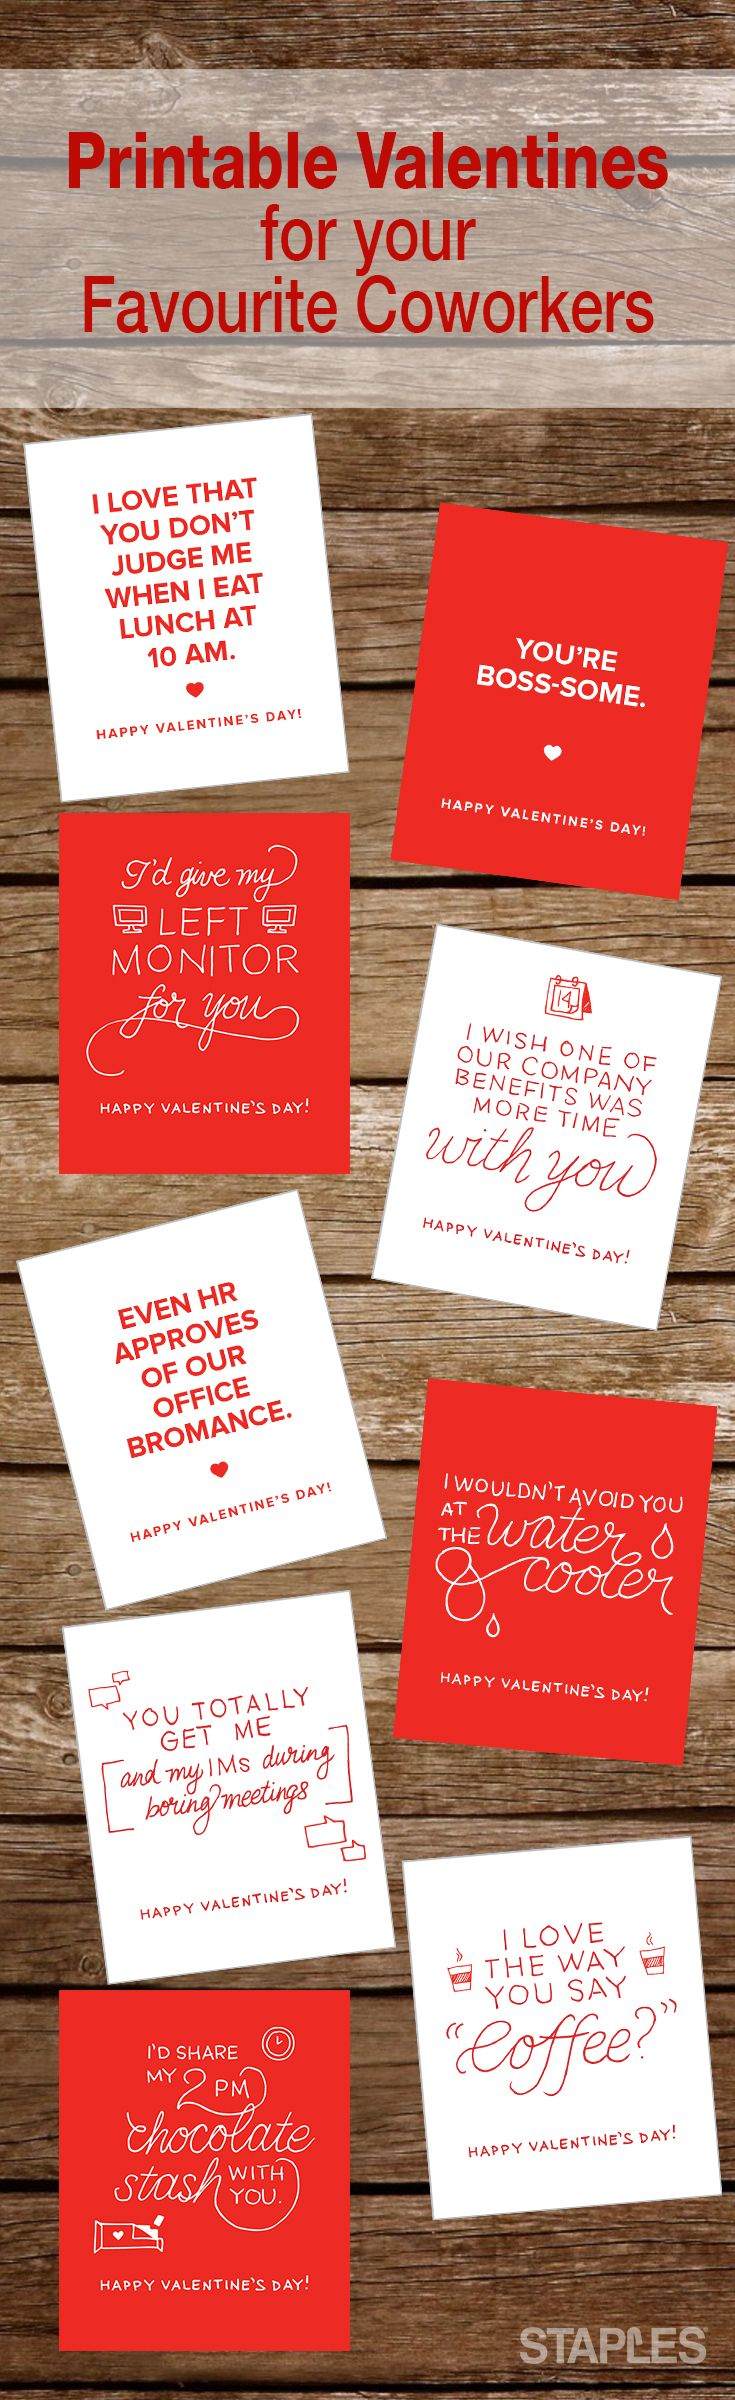 Free Printable Valentines for your Favourite Coworker